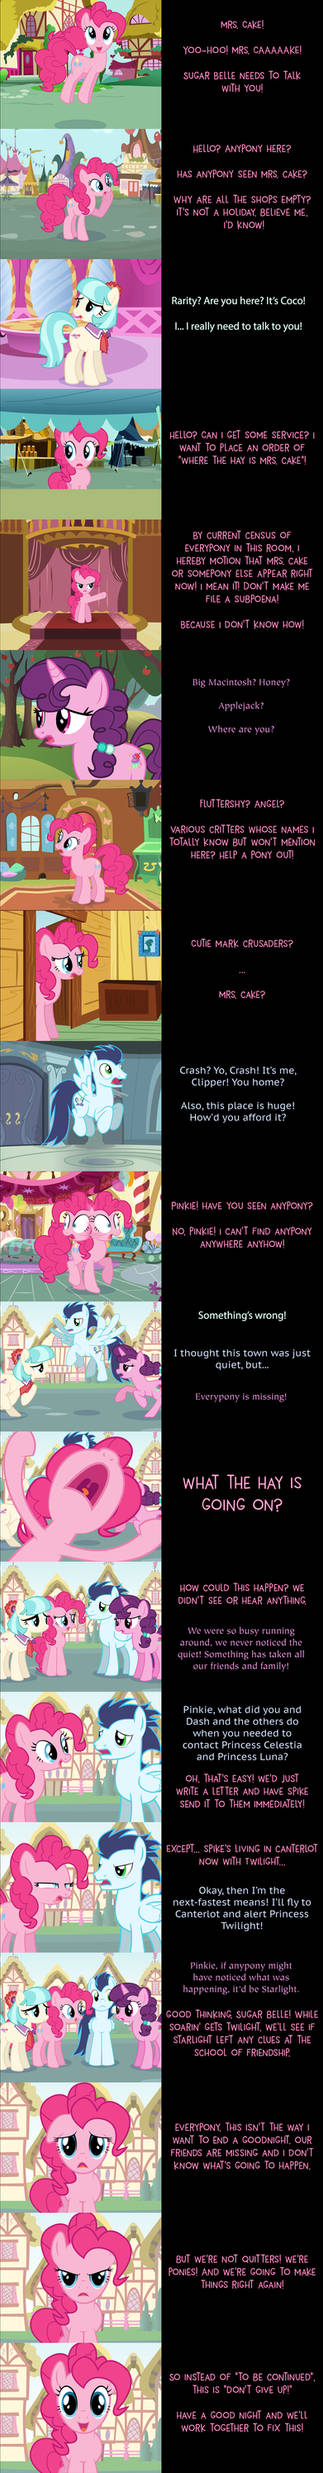 Pinkie Pie Says Goodnight: Missing in Action